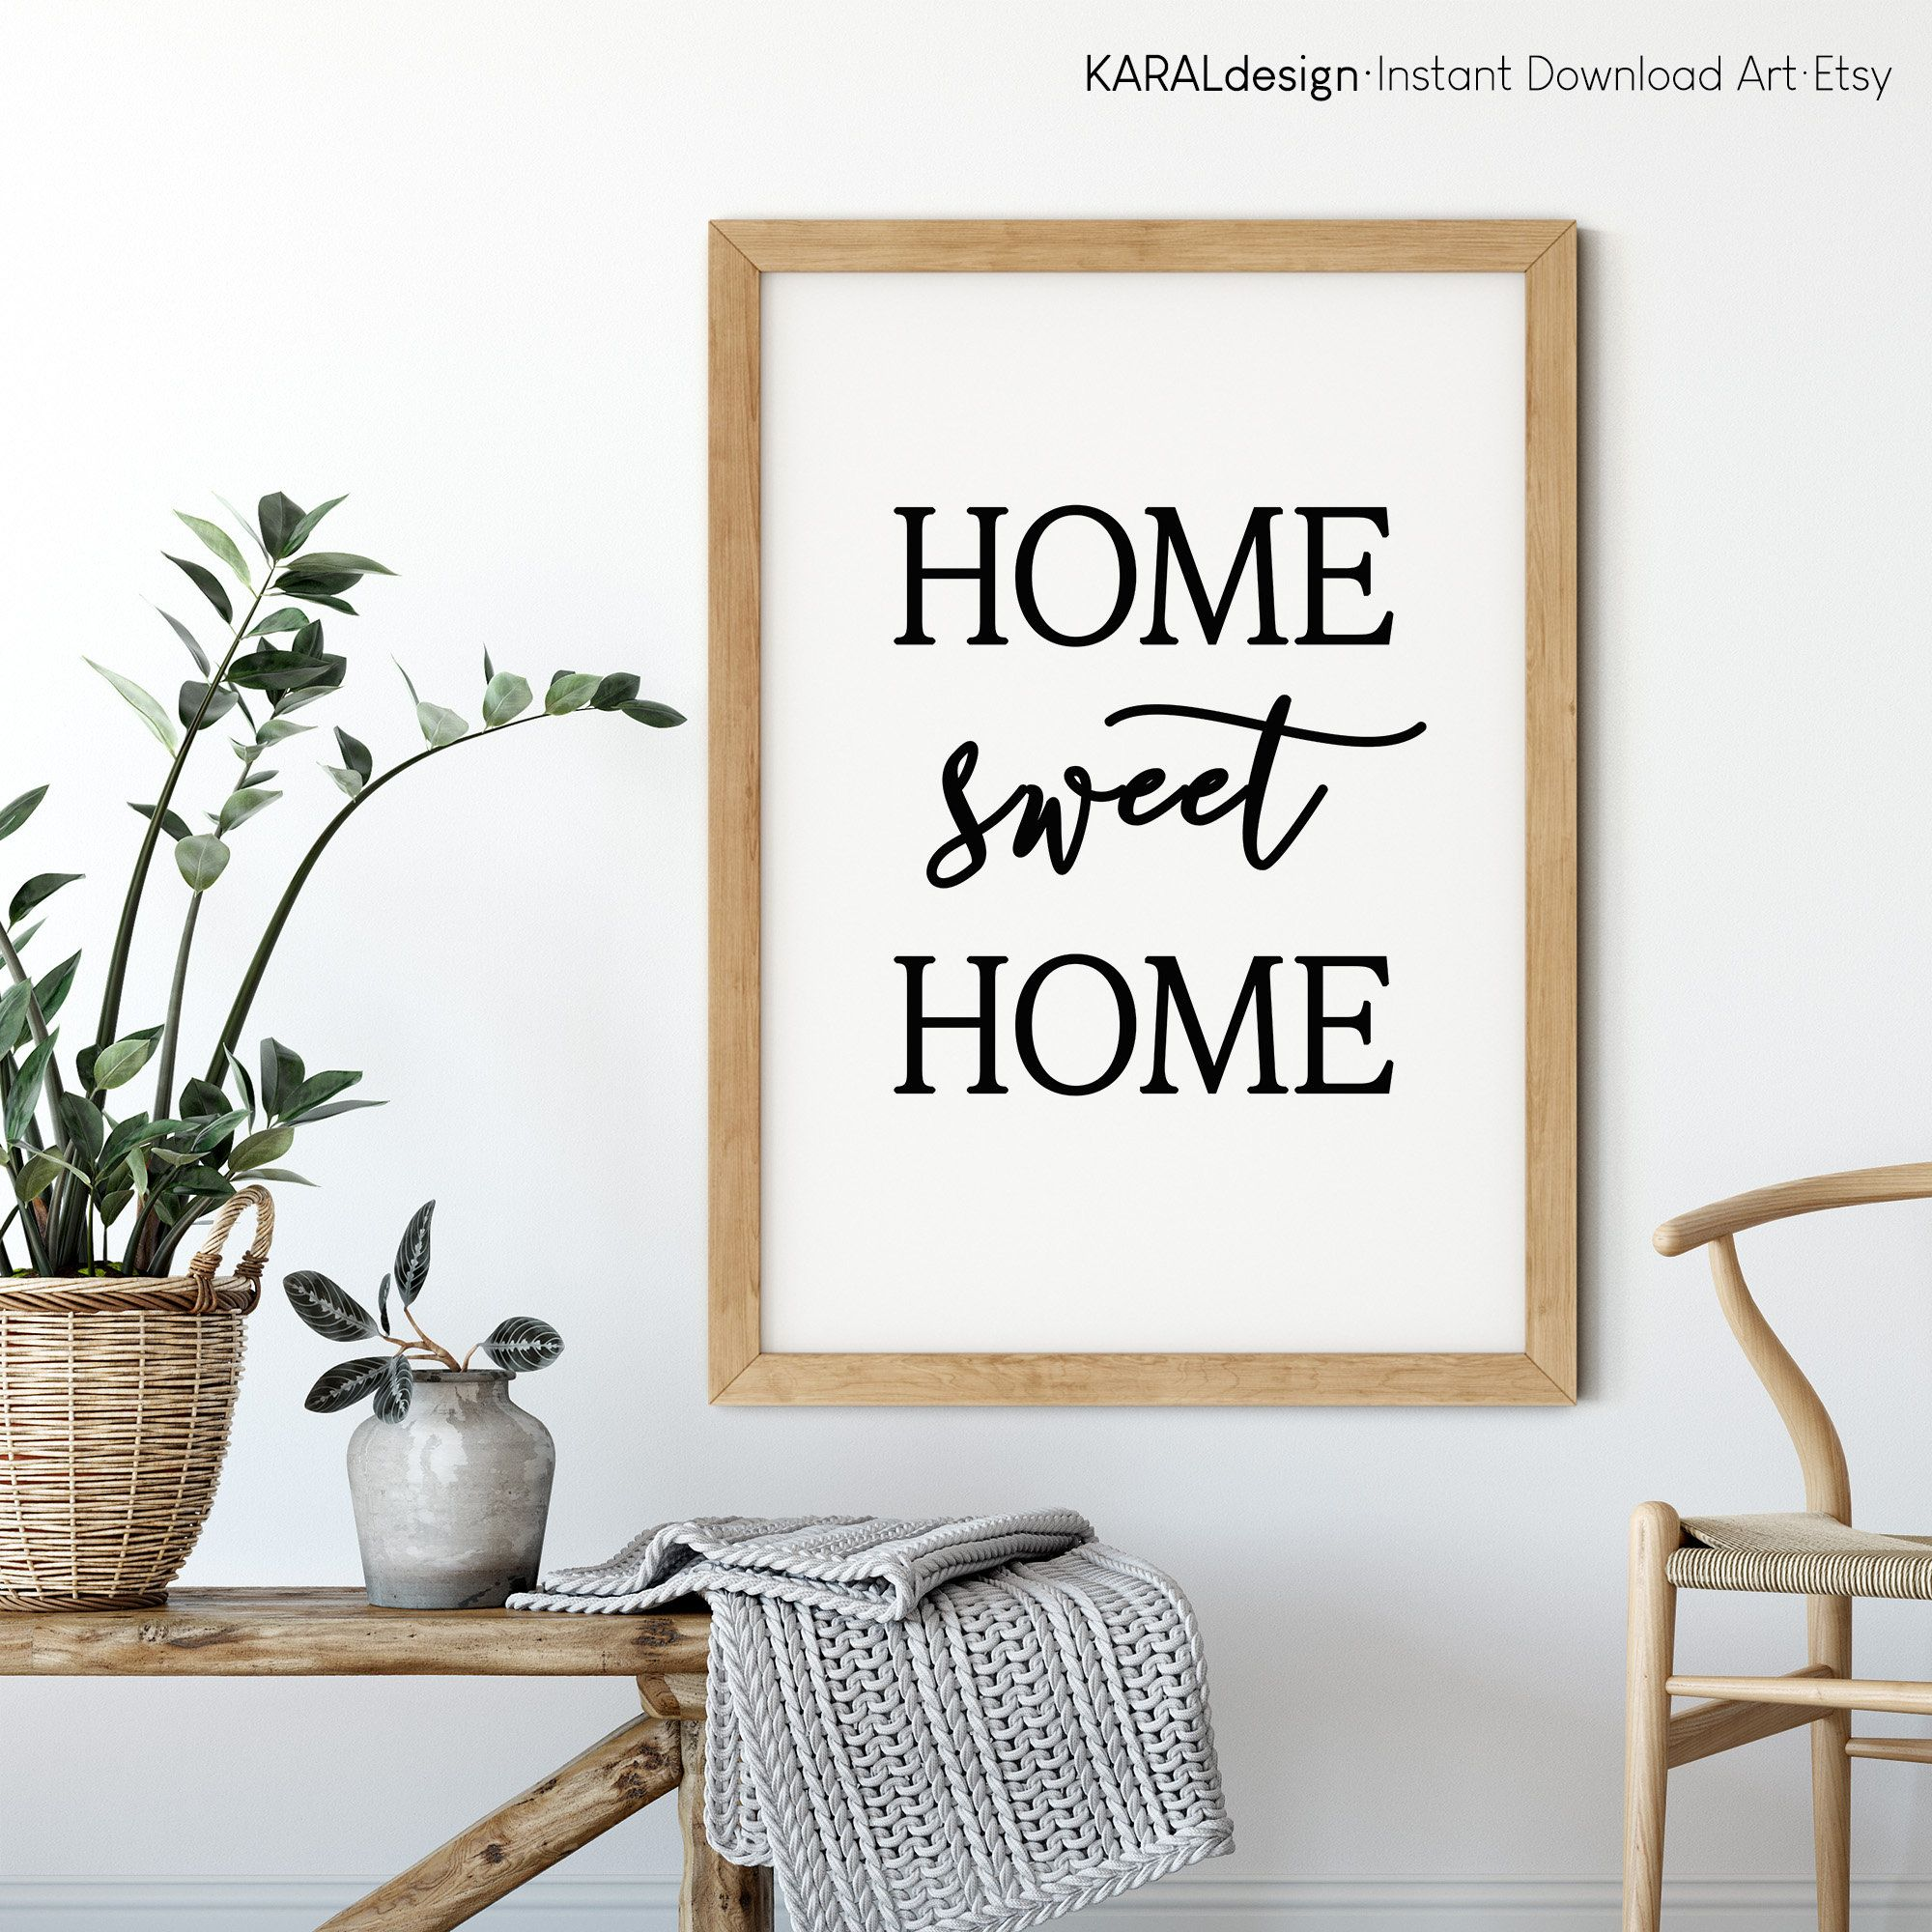 Home Sweet Home Print Home Sweet Home Printable Home Decor Etsy In 2021 Wall Art Living Room Printable Art Living Room Photo Frame Display